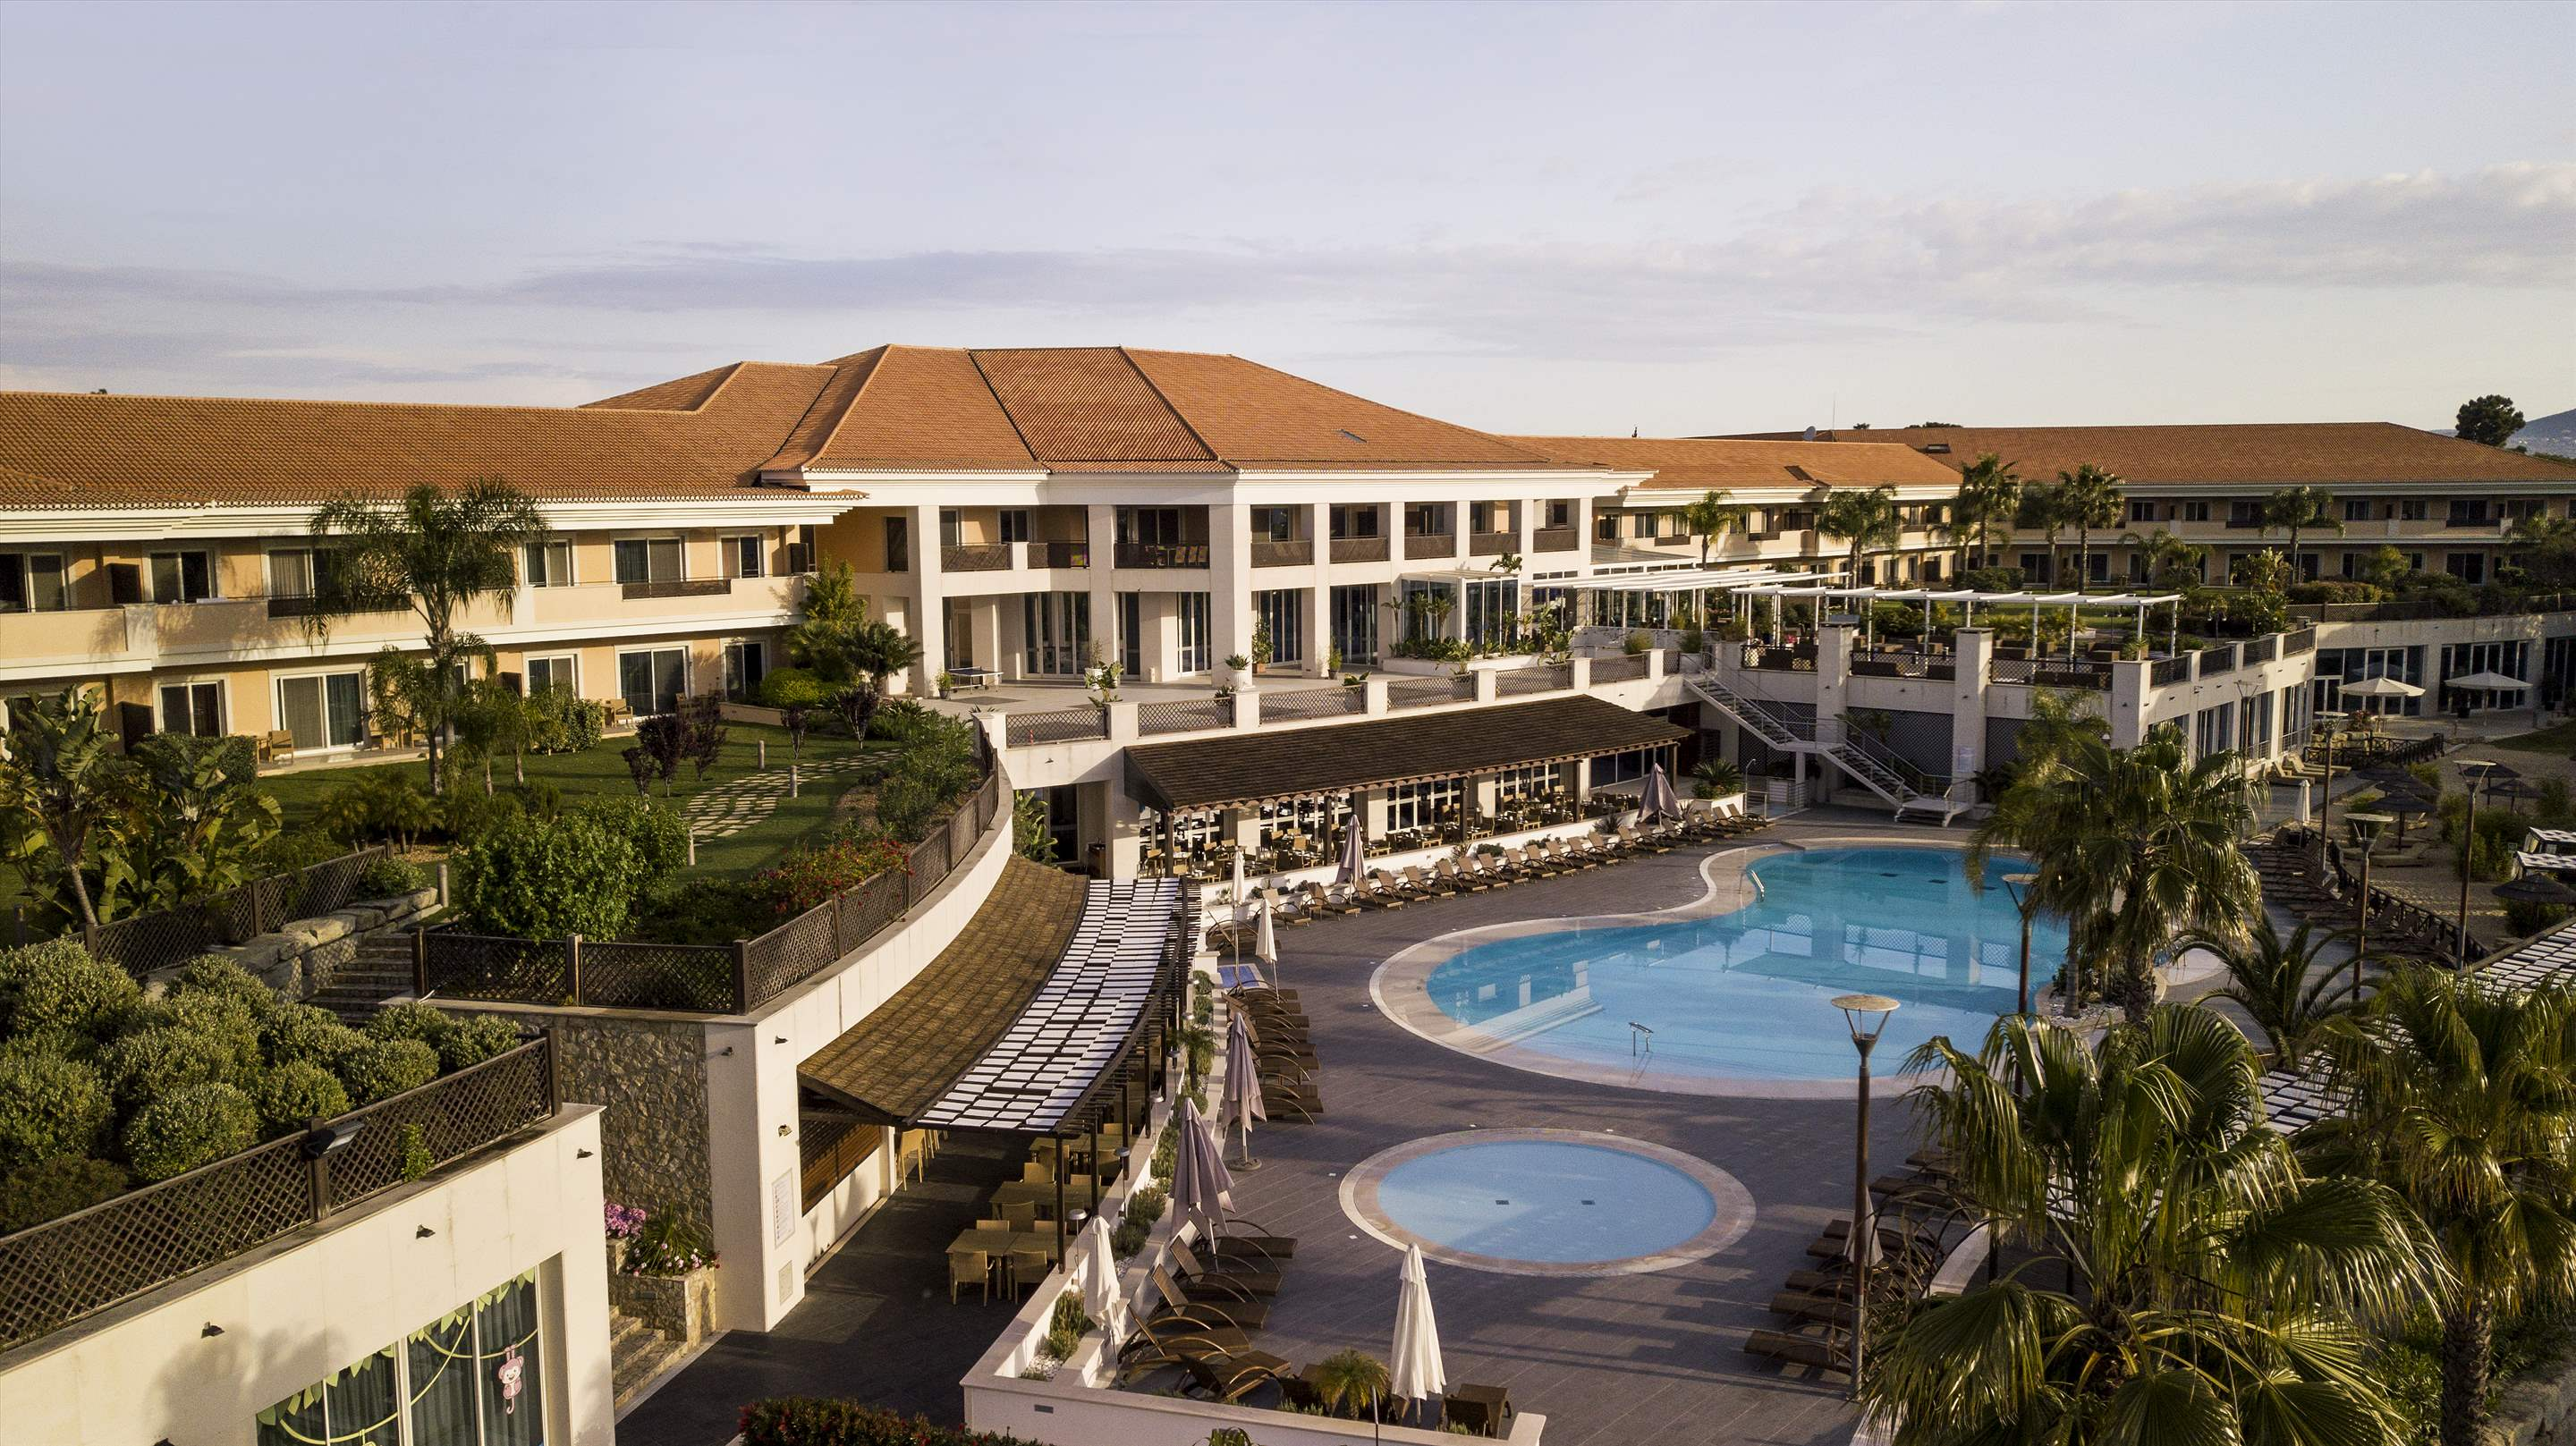 Wyndham Grand Algarve 1 Bedroom, Deluxe Suite, Pool Side ,Room Only , 1 bedroom apartment in Wyndham Grand Algarve, Algarve Photo #28